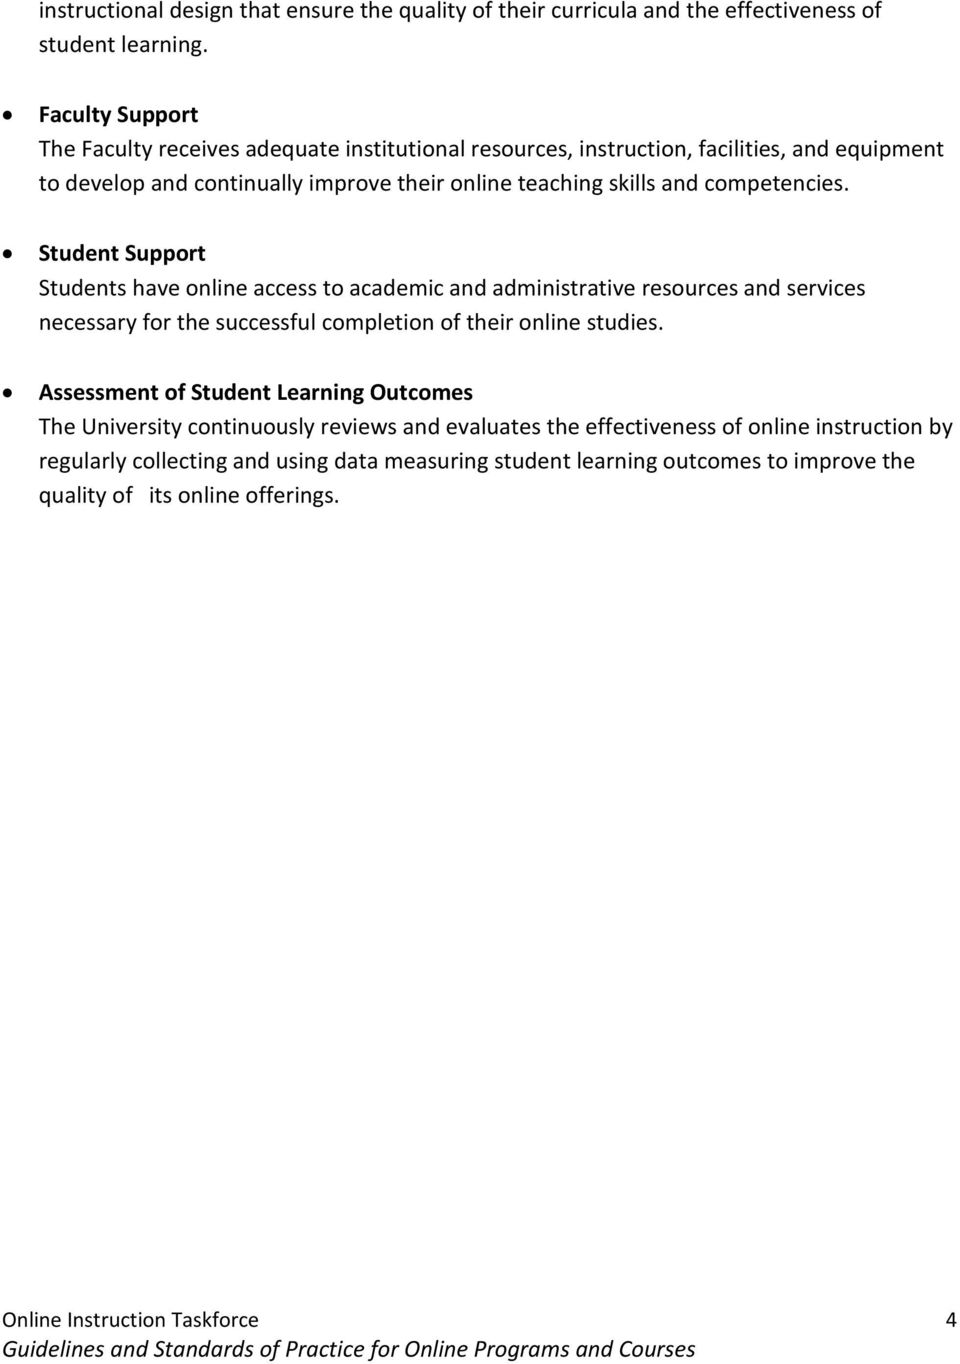 competencies. Student Support Students have online access to academic and administrative resources and services necessary for the successful completion of their online studies.